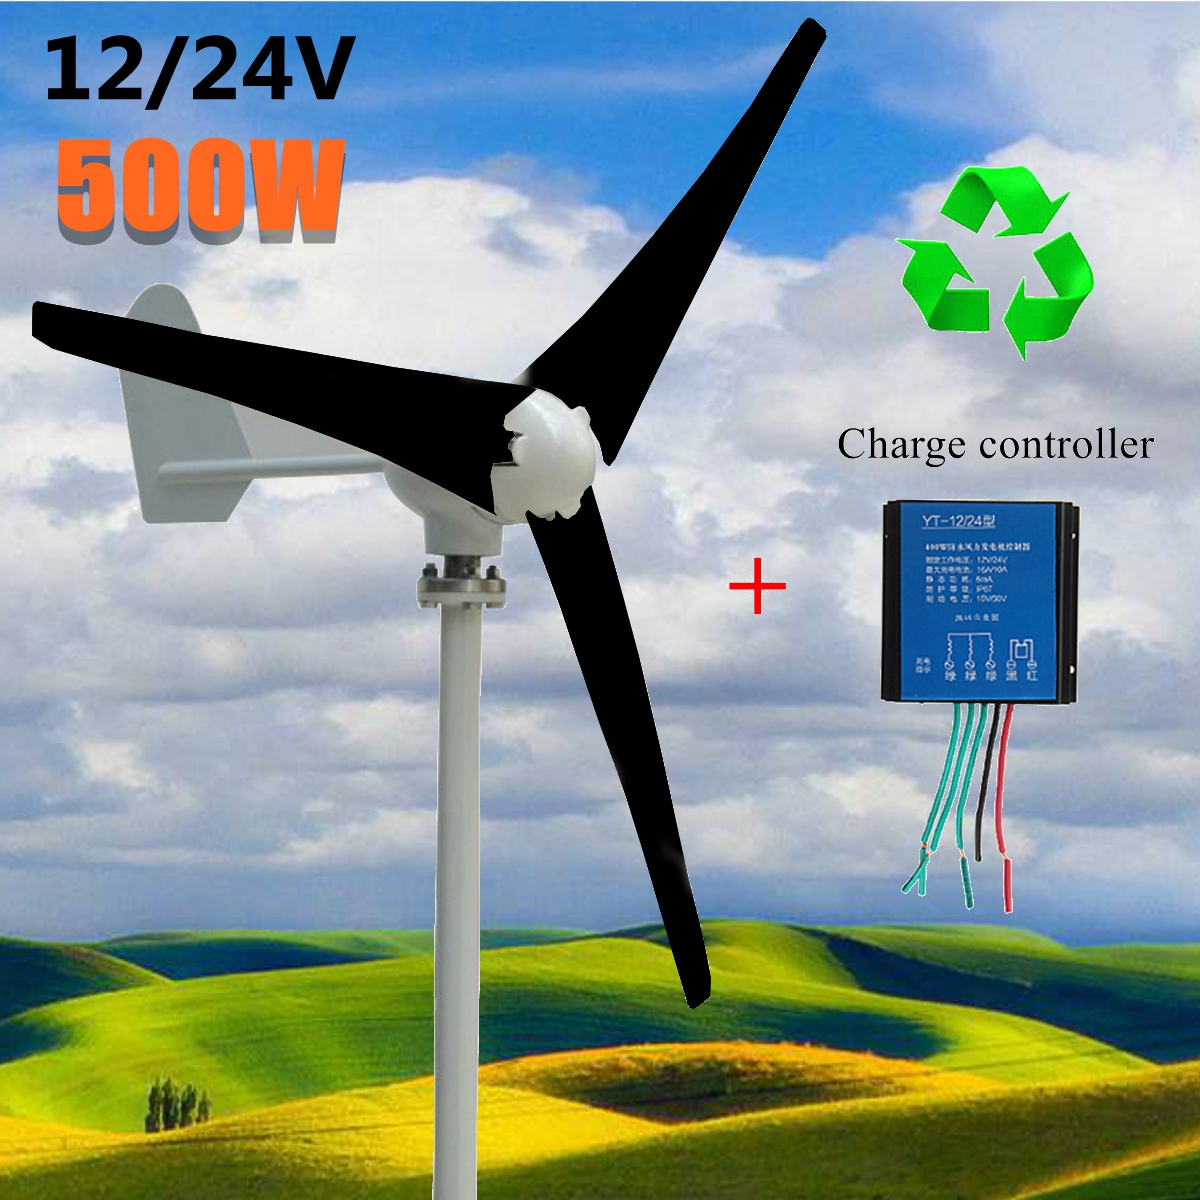 Max 600W Wind Turbine Generator DC 12V 24V 3 Blade Power Supply + Windmill Charge Controller